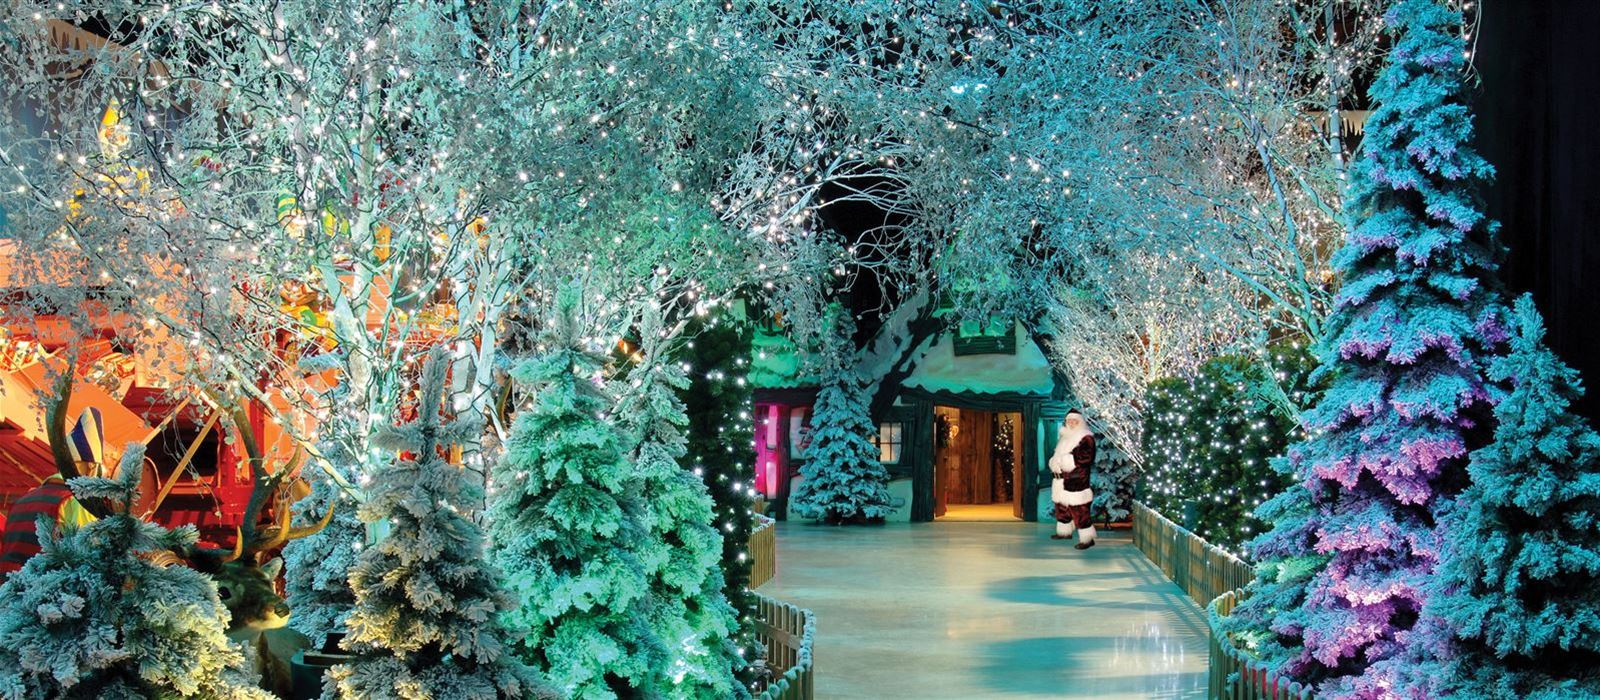 Christmas winter wonderland pictures